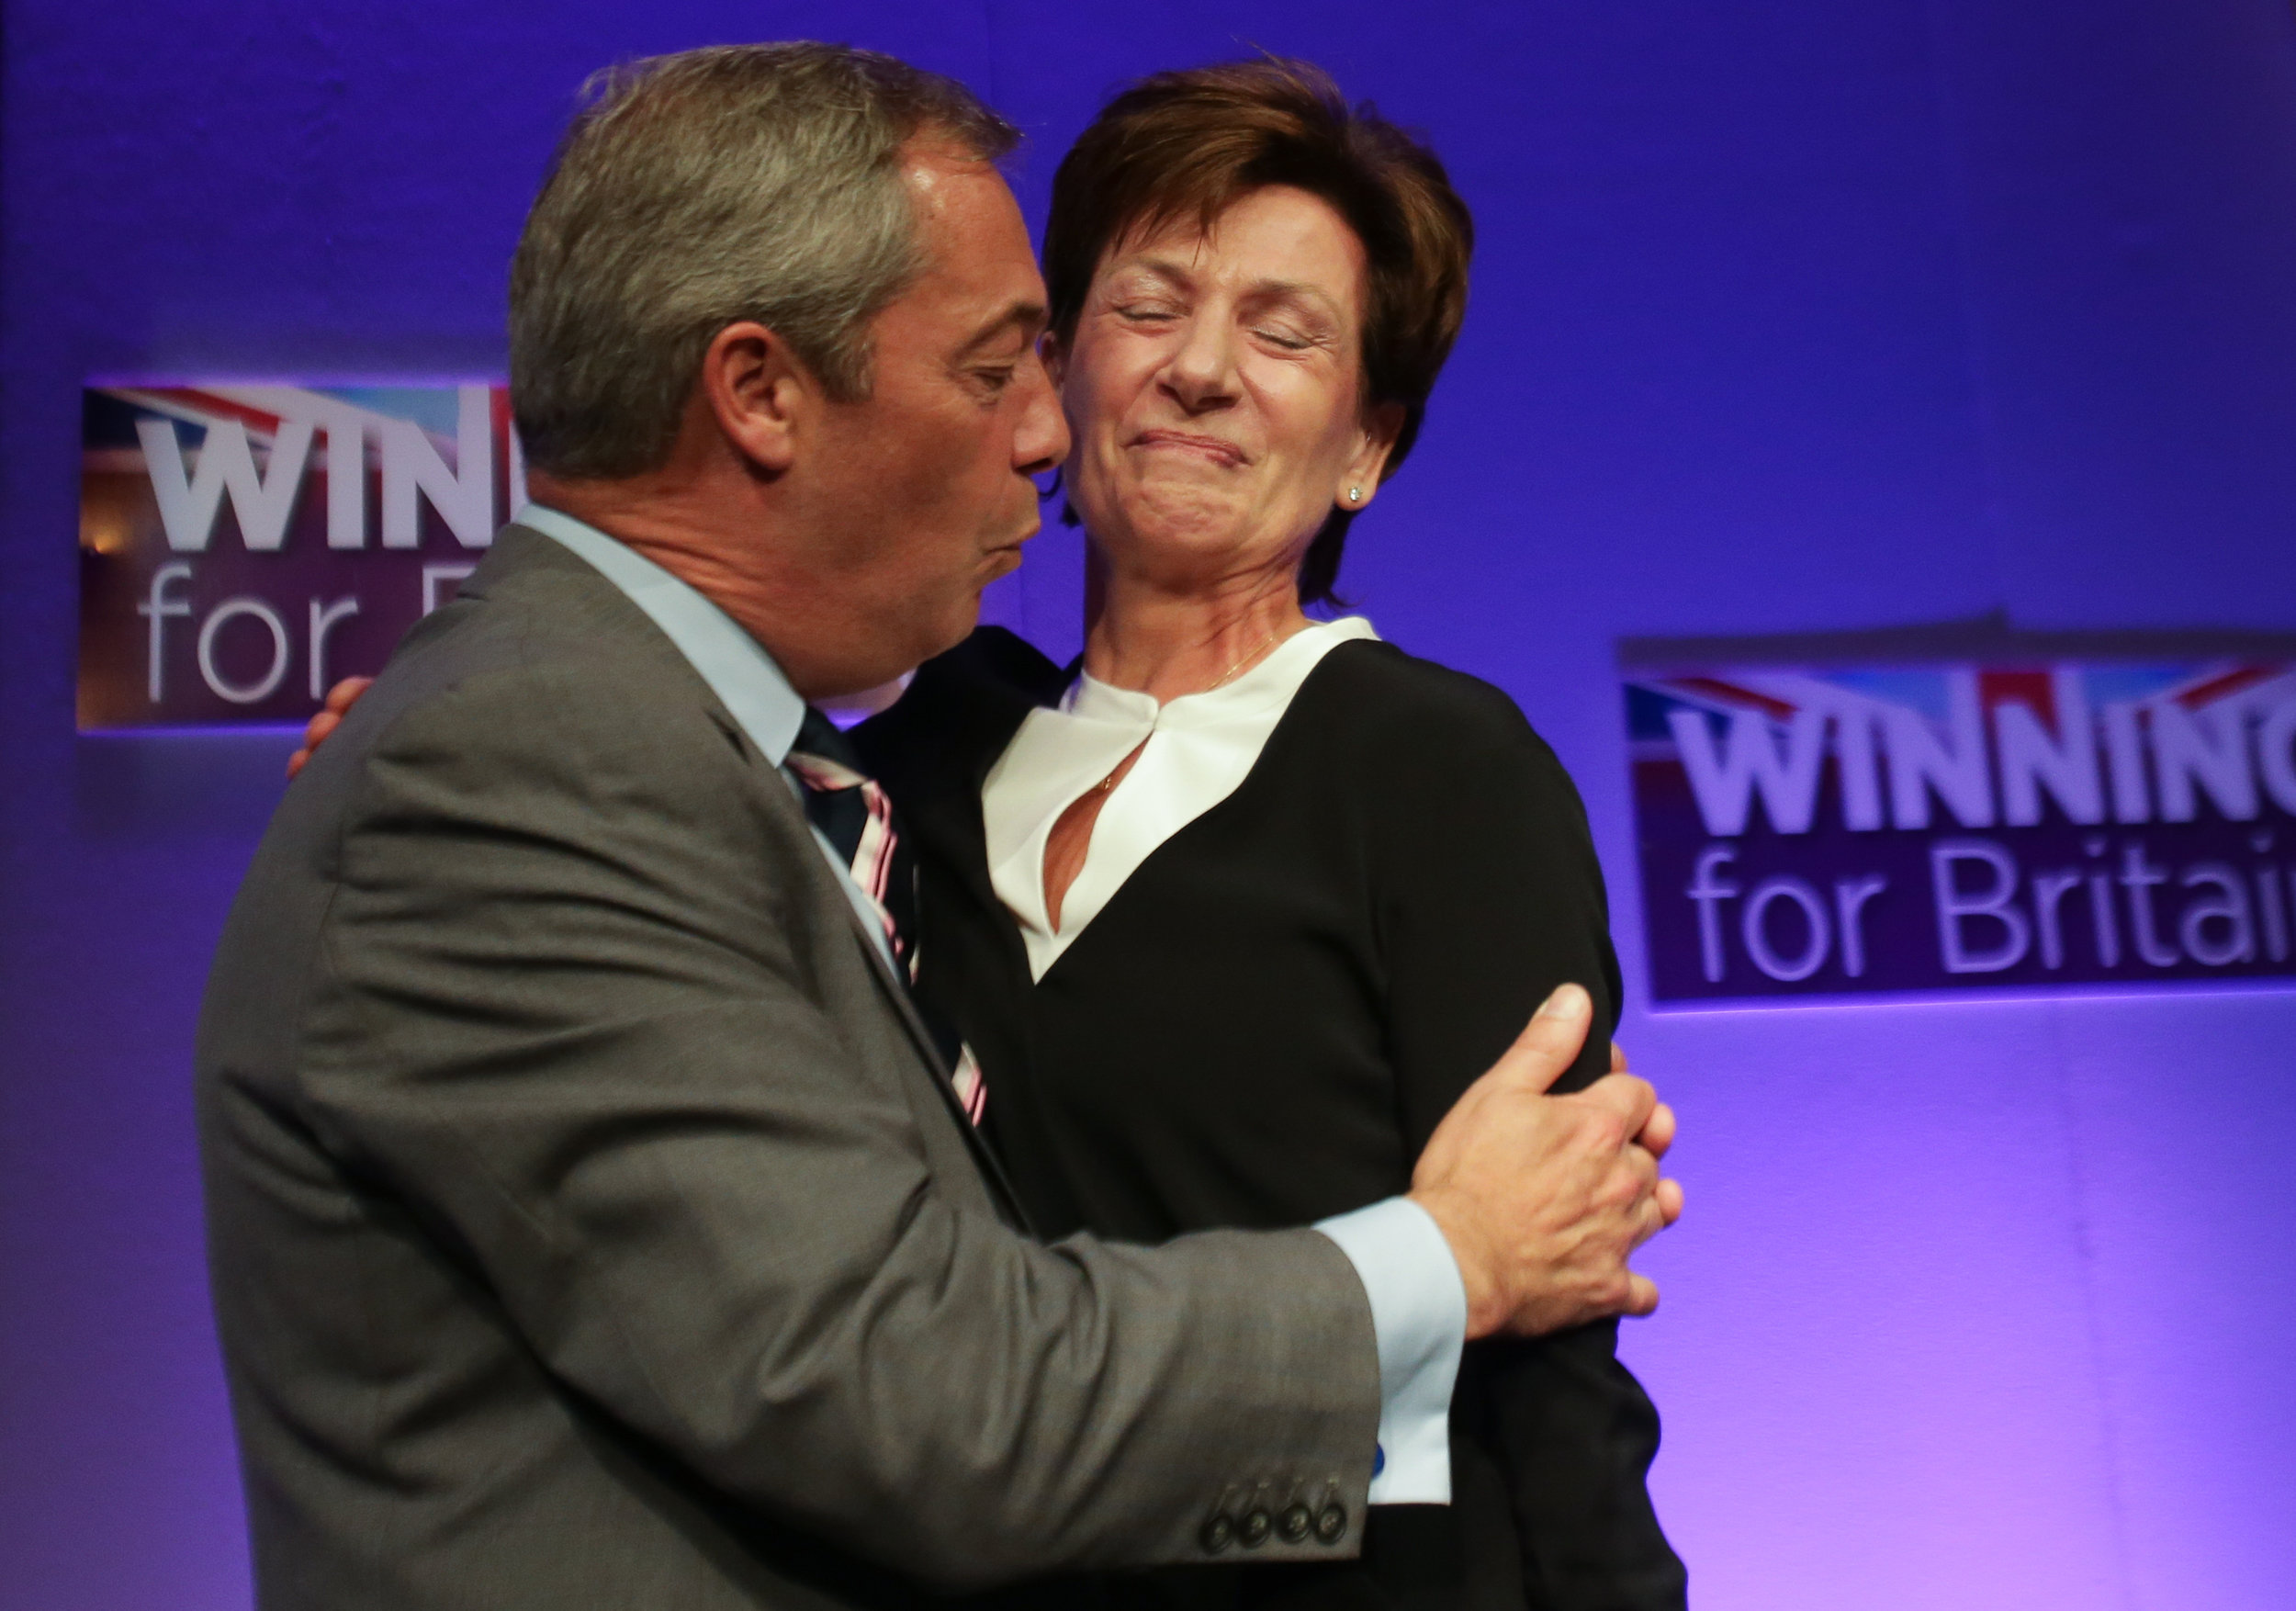 Outgoing UKIP leader Nigel Farage embraces his successor Diane James as she is introduced at the party�s Autumn Conference in Bournemouth.Photo by Daniel Leal-Olivas  16 September 2016